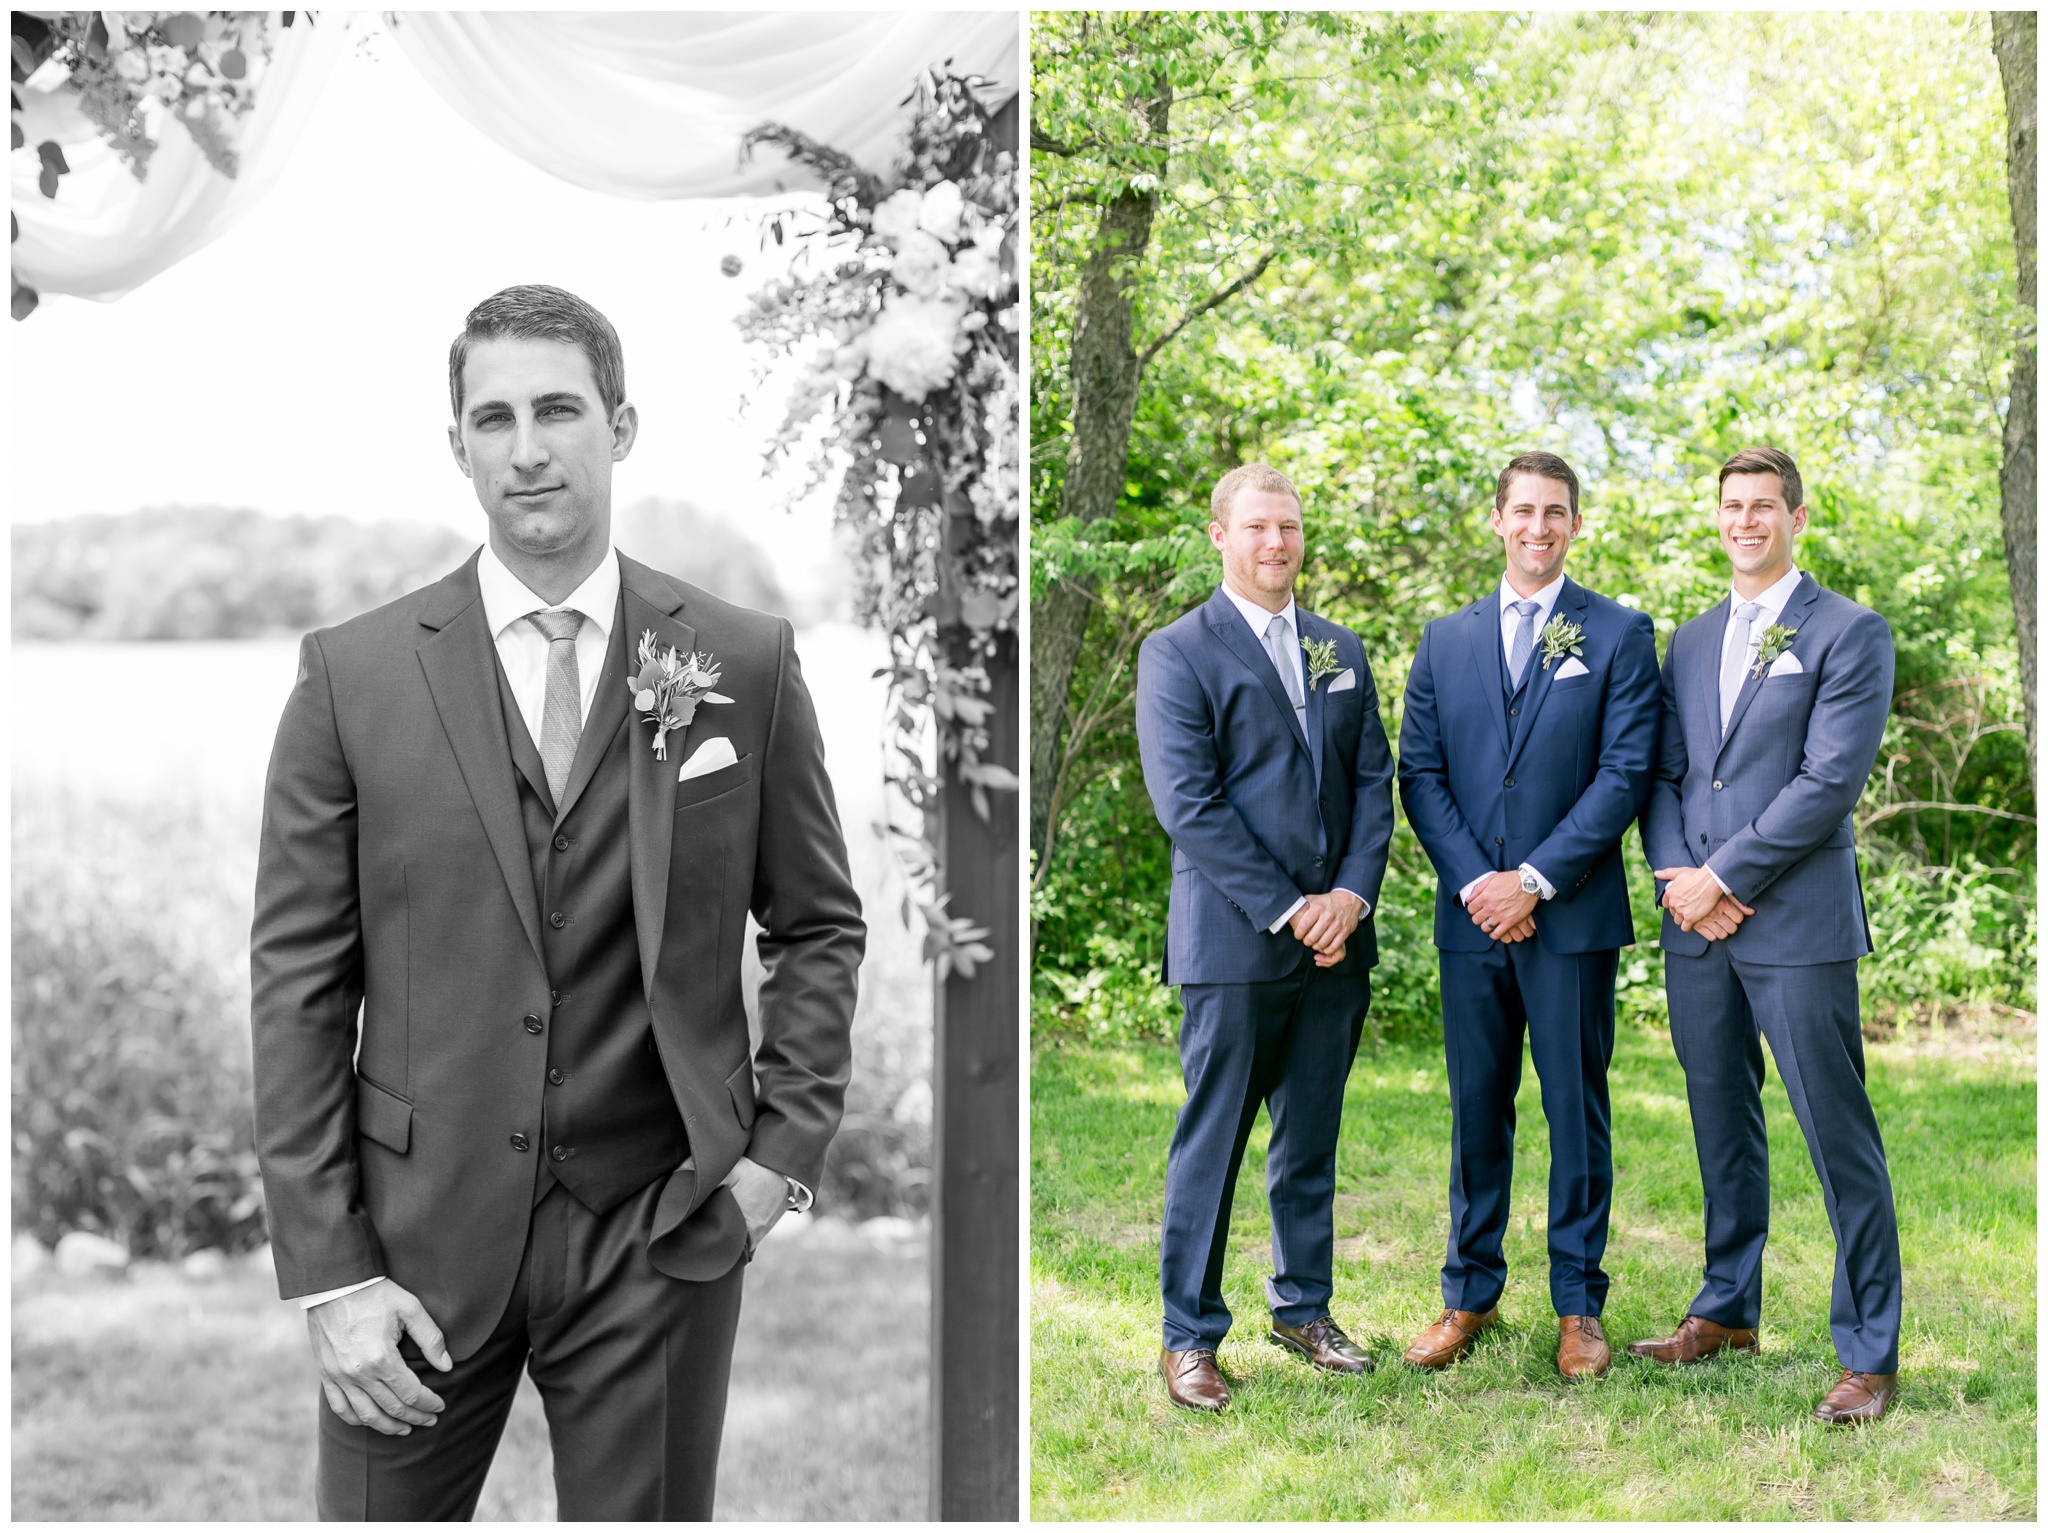 private_estate_wedding_stoughton_wisconsin_wedding_caynay_photo_3855.jpg